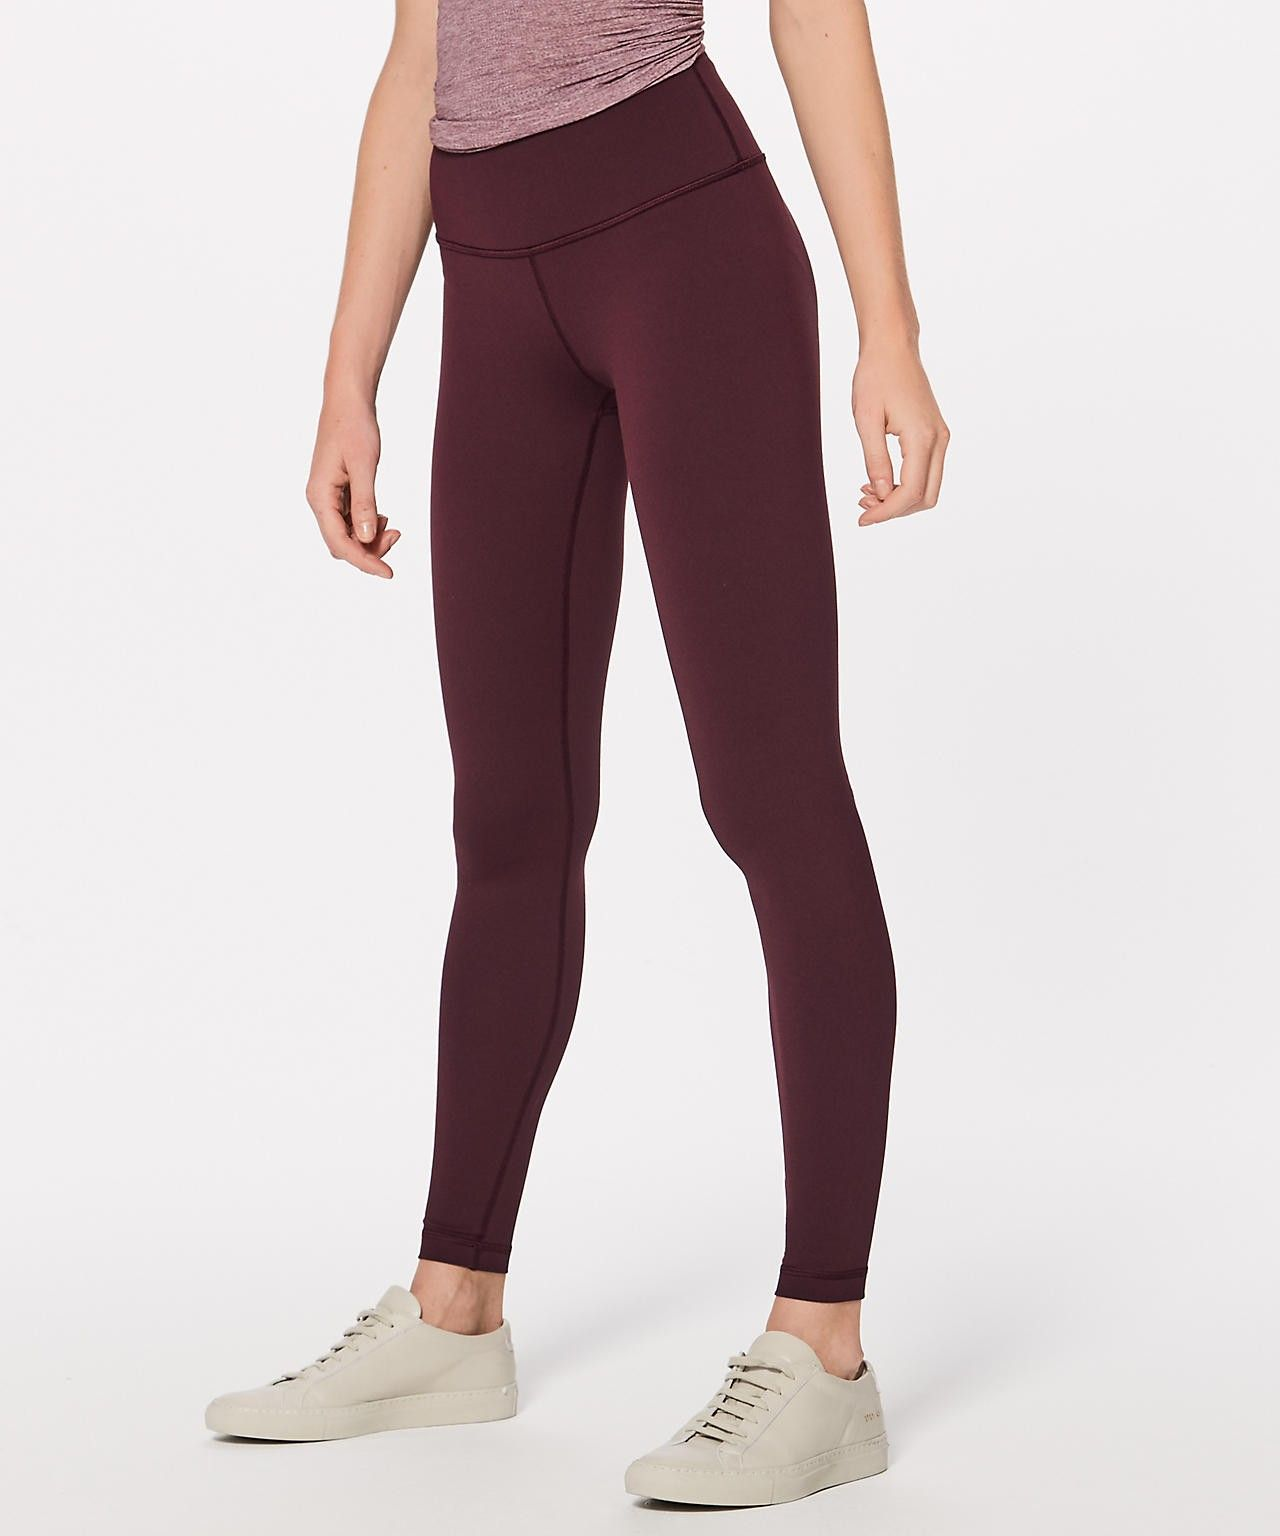 e6d7cba222 These Lululemon leggings maroon + olive green in size 4-- THERE IS A  LULULEMON IN DOWNTOWN LANCASTER ;)